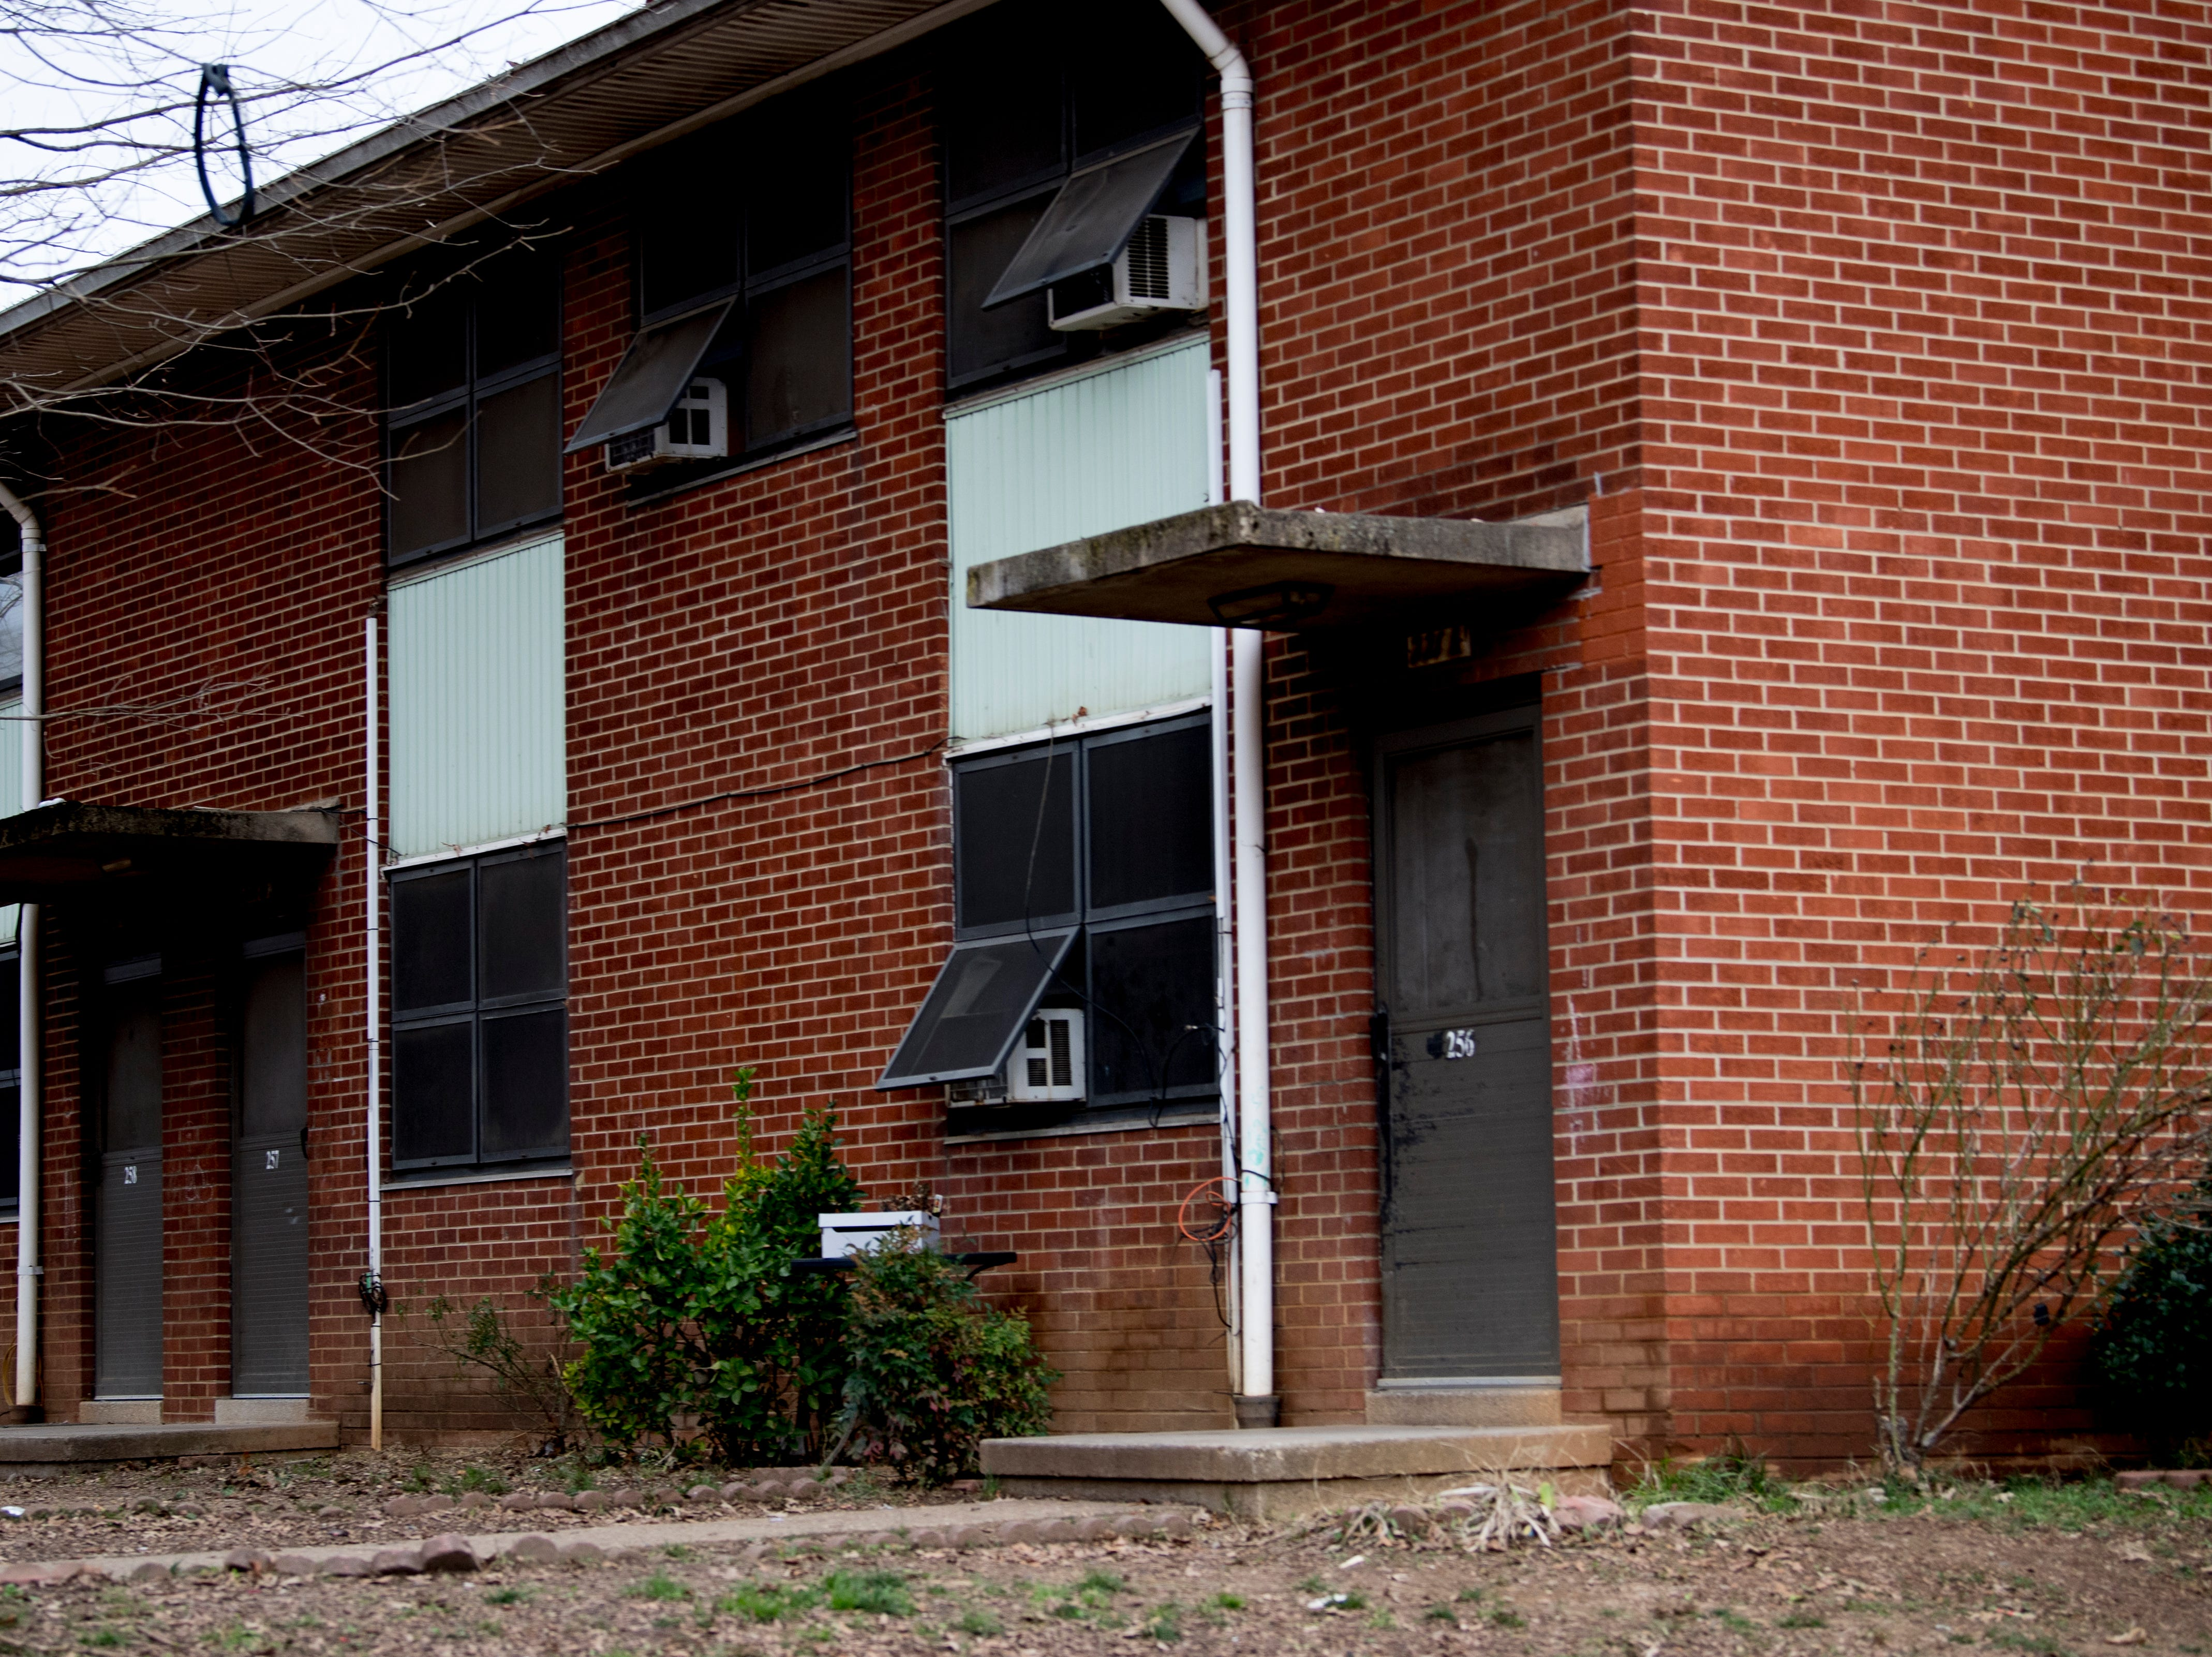 One of the apartment building blocks in Austin Homes in Knoxville, Tennessee, on Wednesday, January 23, 2019. Knoxville's Community Development Corporation (KCDC) plans a revitalization of the site into a residential neighborhood with potential for affordable, workforce and market-rate housing units, as well as other appropriate non-residential uses.